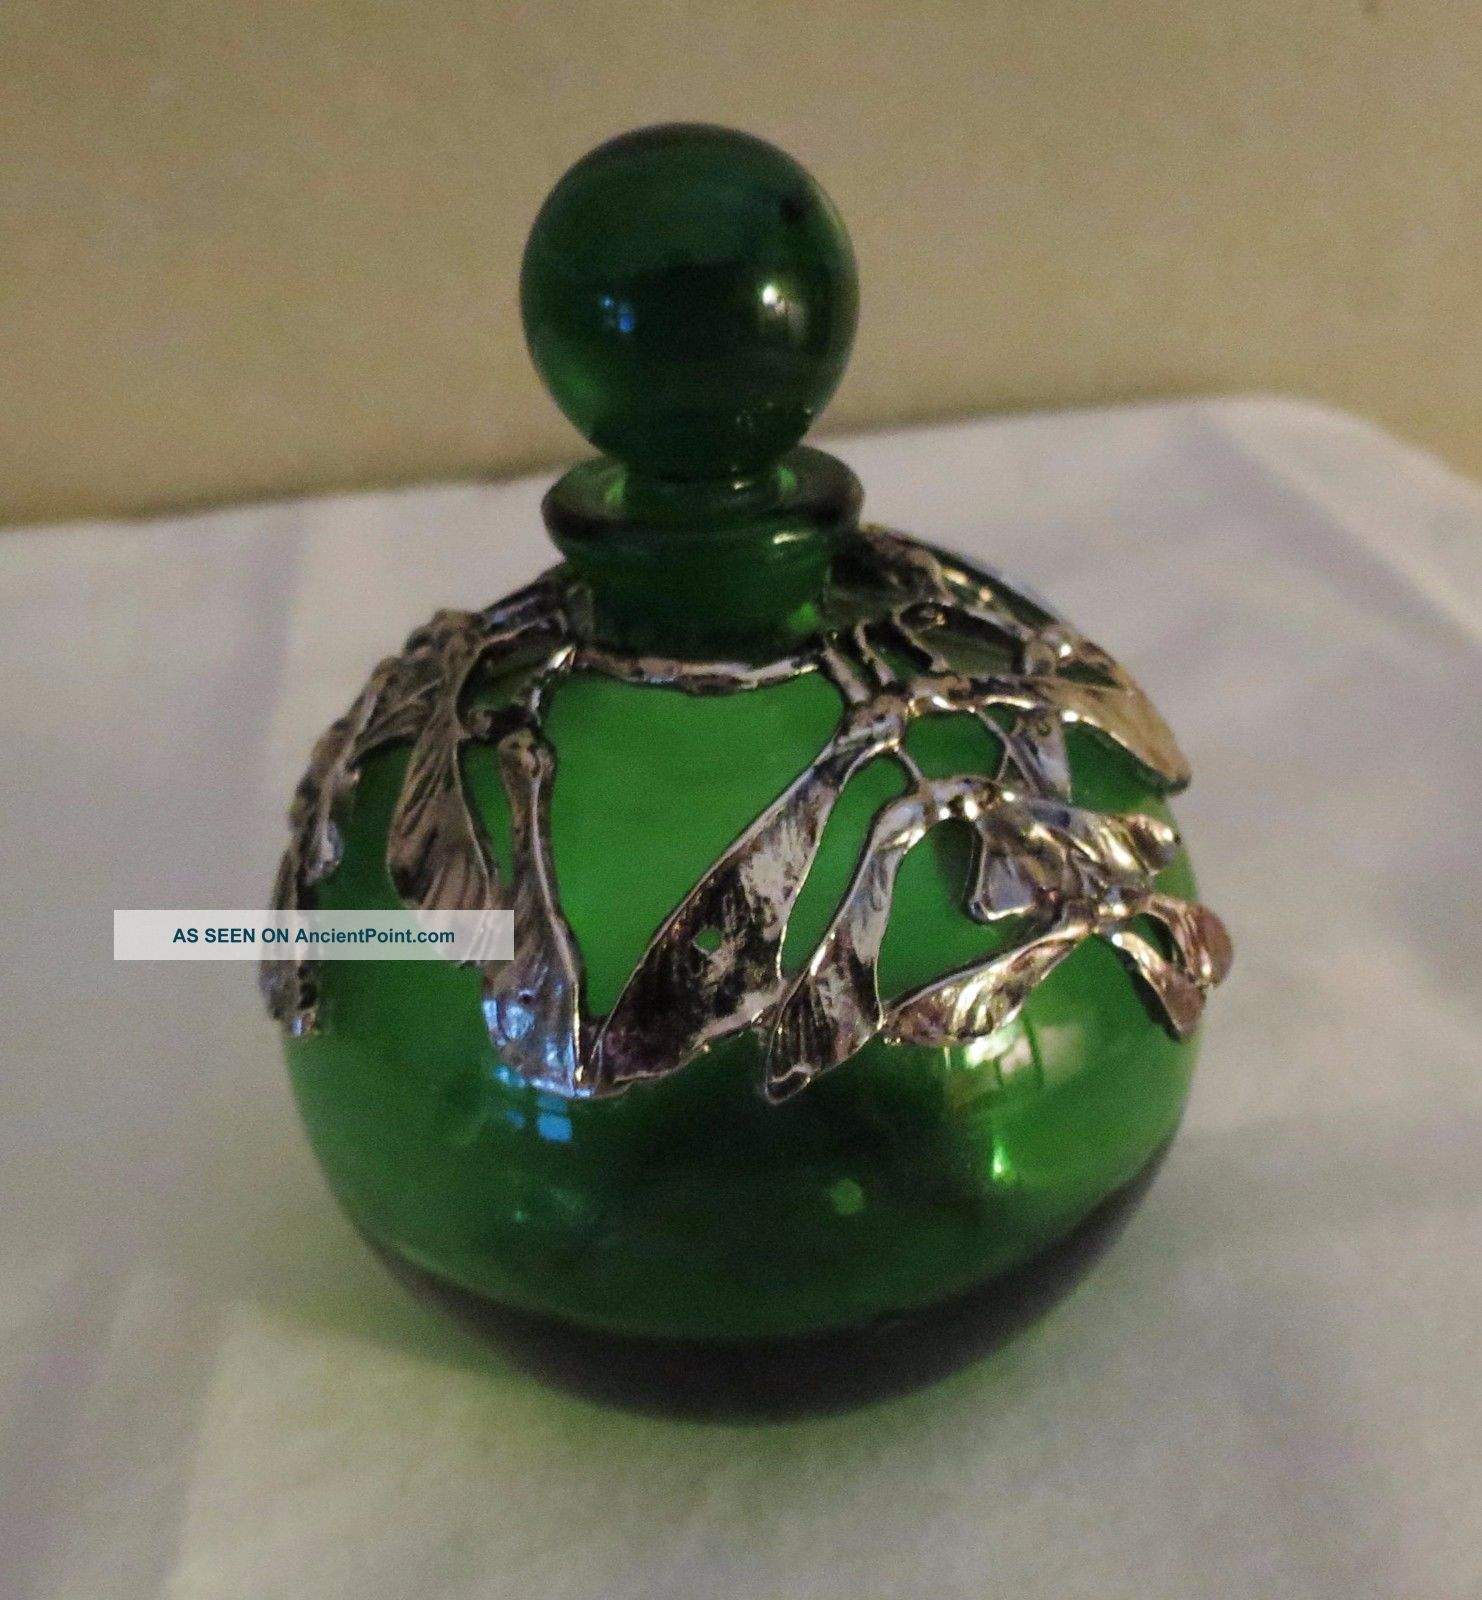 Antique Emerald Green Perfume Bottle Silver Overlay Perfume Bottles photo